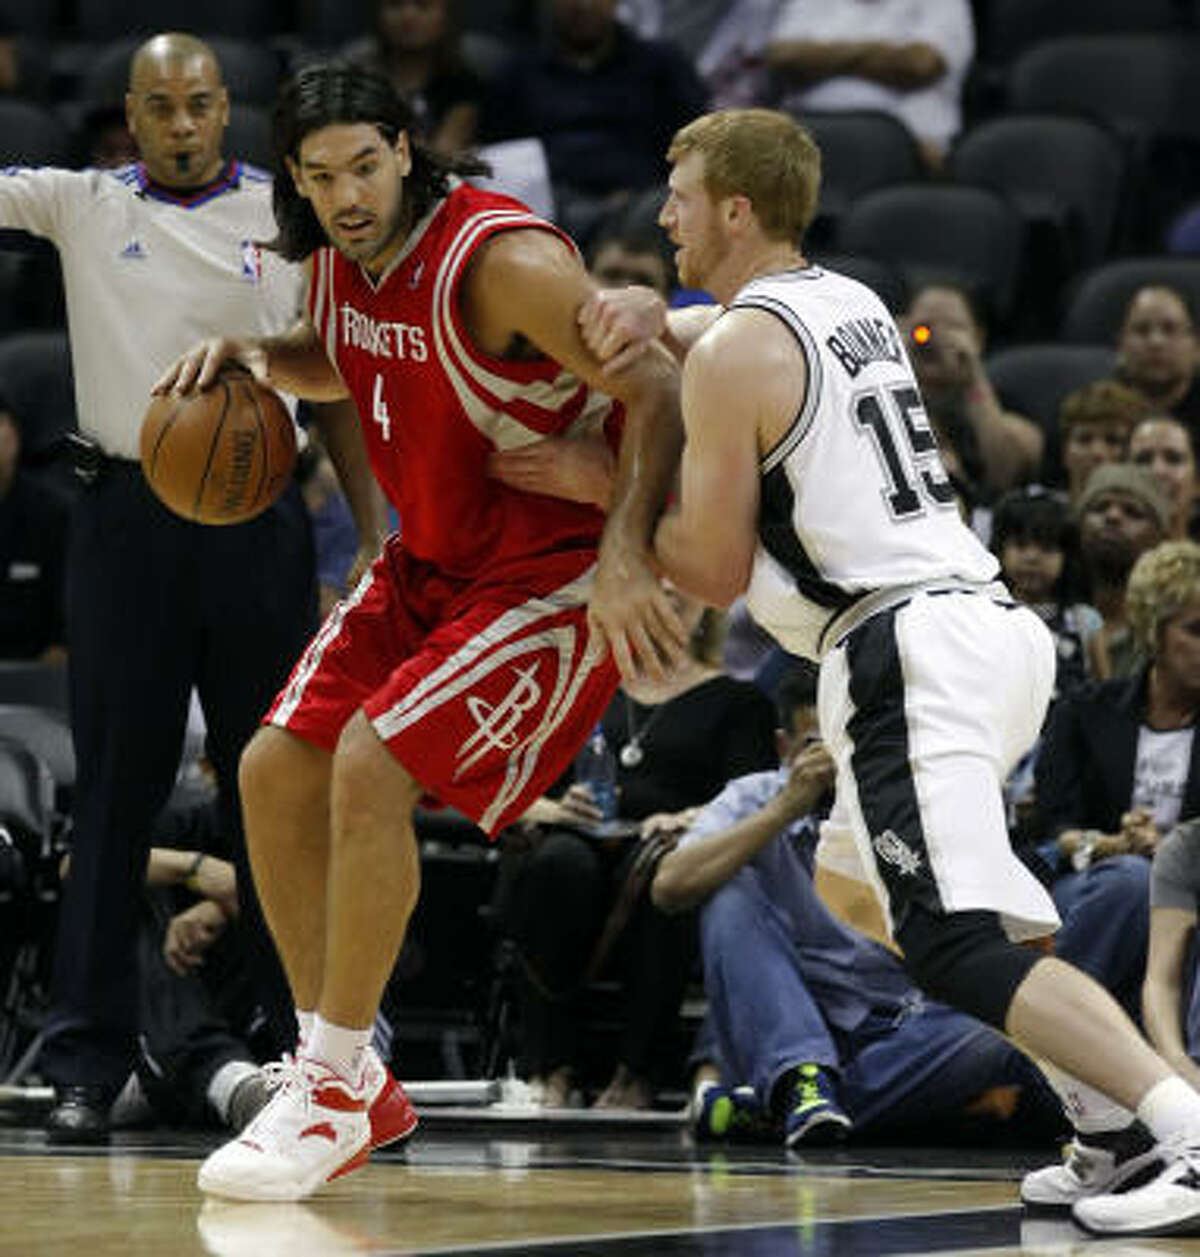 Luis Scola, left, shot 5-for-9 from the field and scored 13 points.